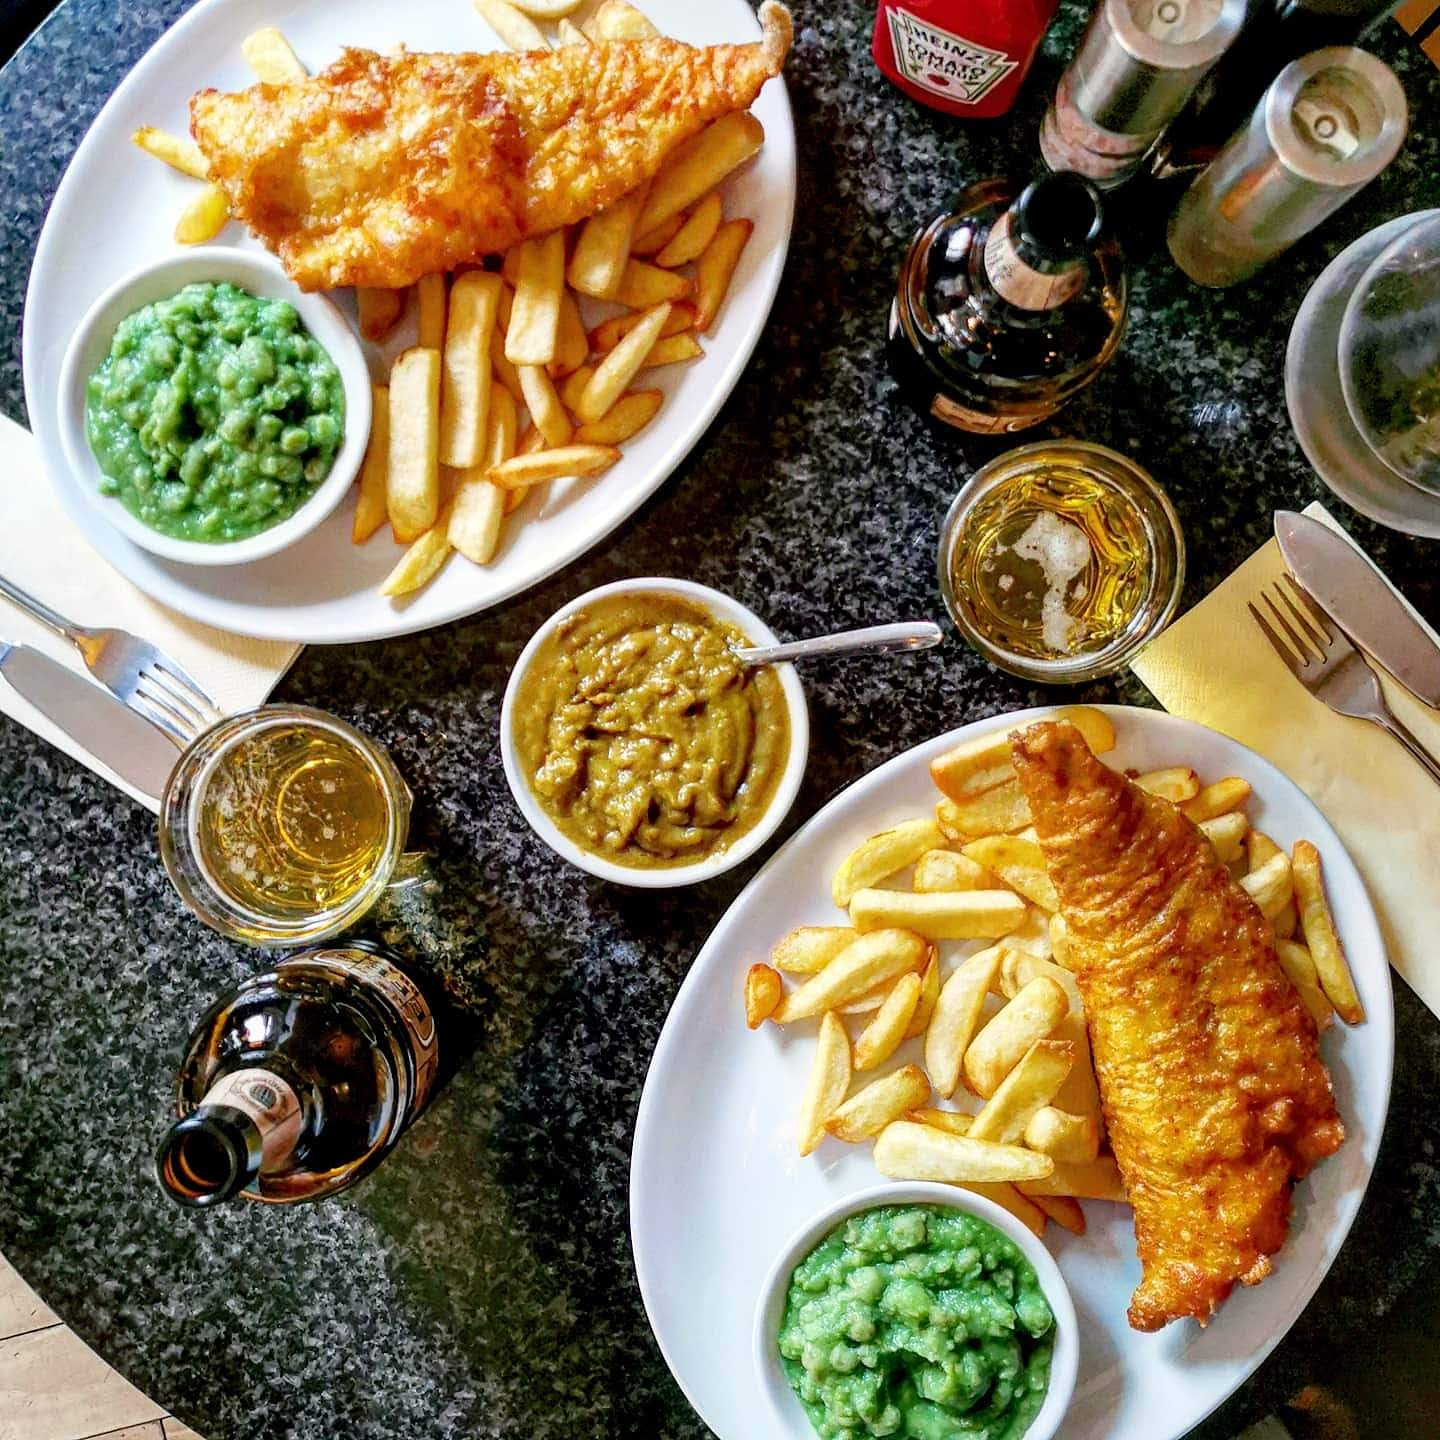 Overhead view of two plates of fish and chips with mushy peas, a side of curry sauce and two beers